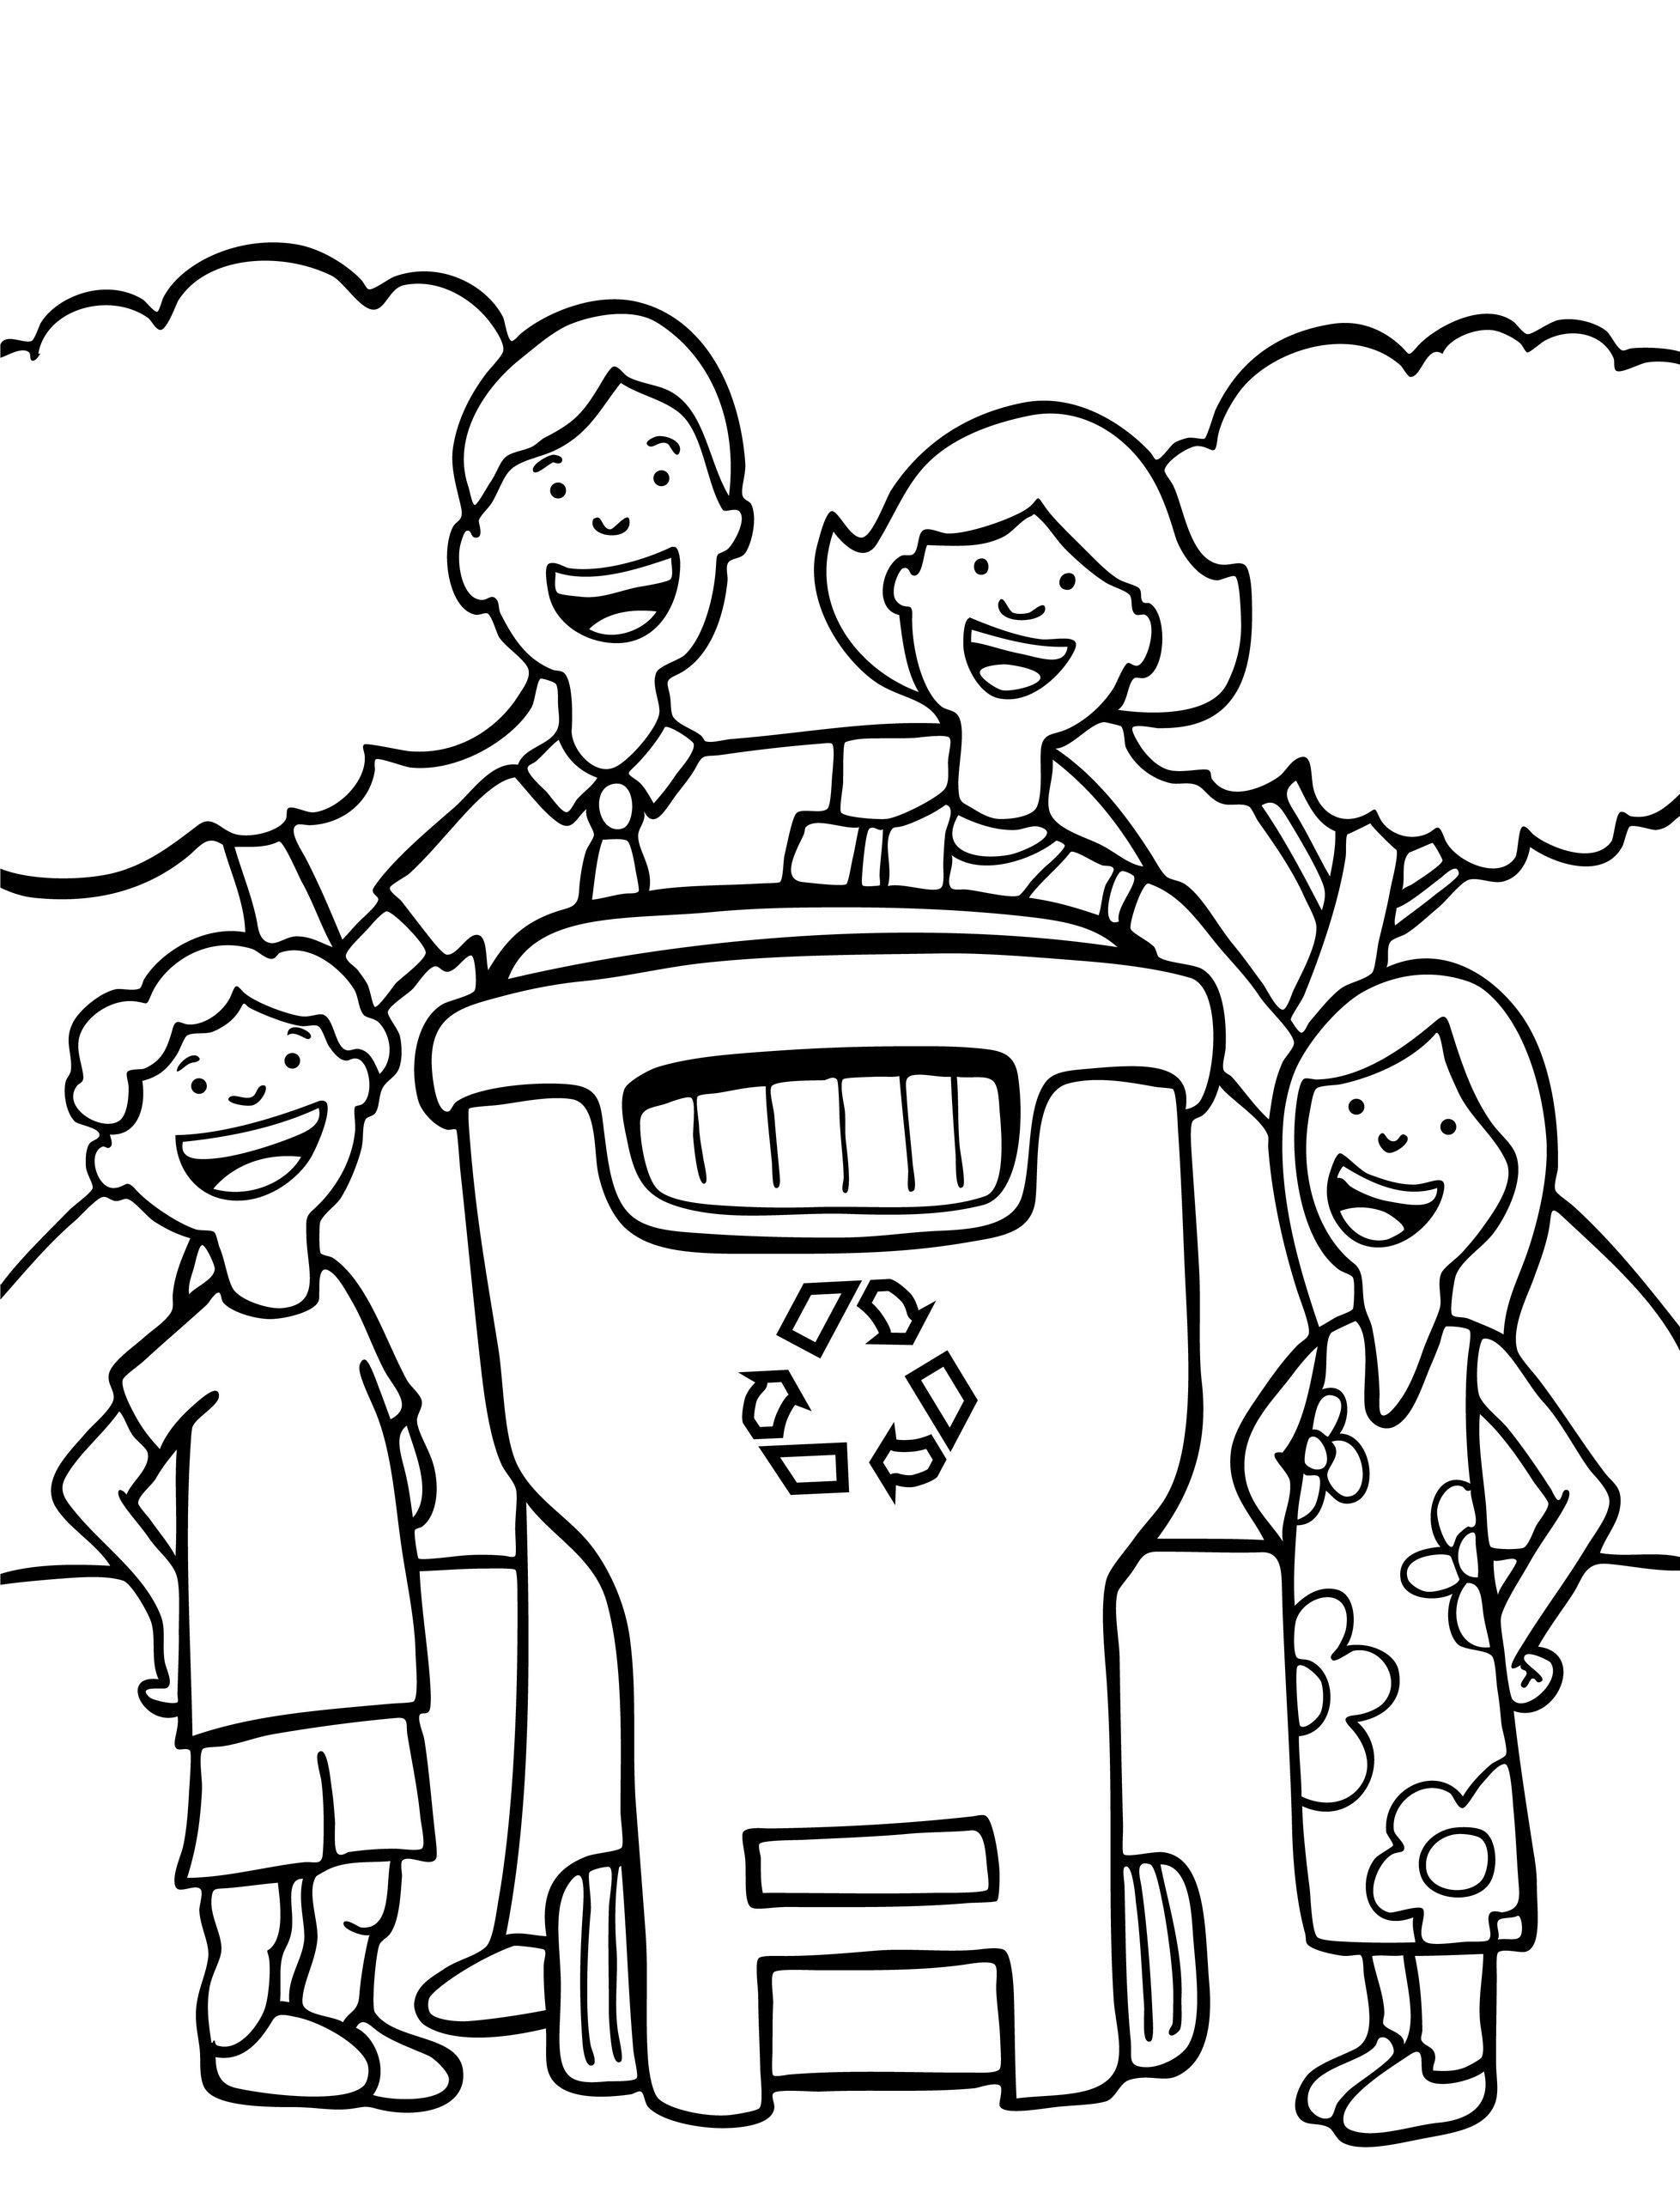 Free coloring pages for earth day - Free Earth Day Coloring Page For Children Let S Recycle